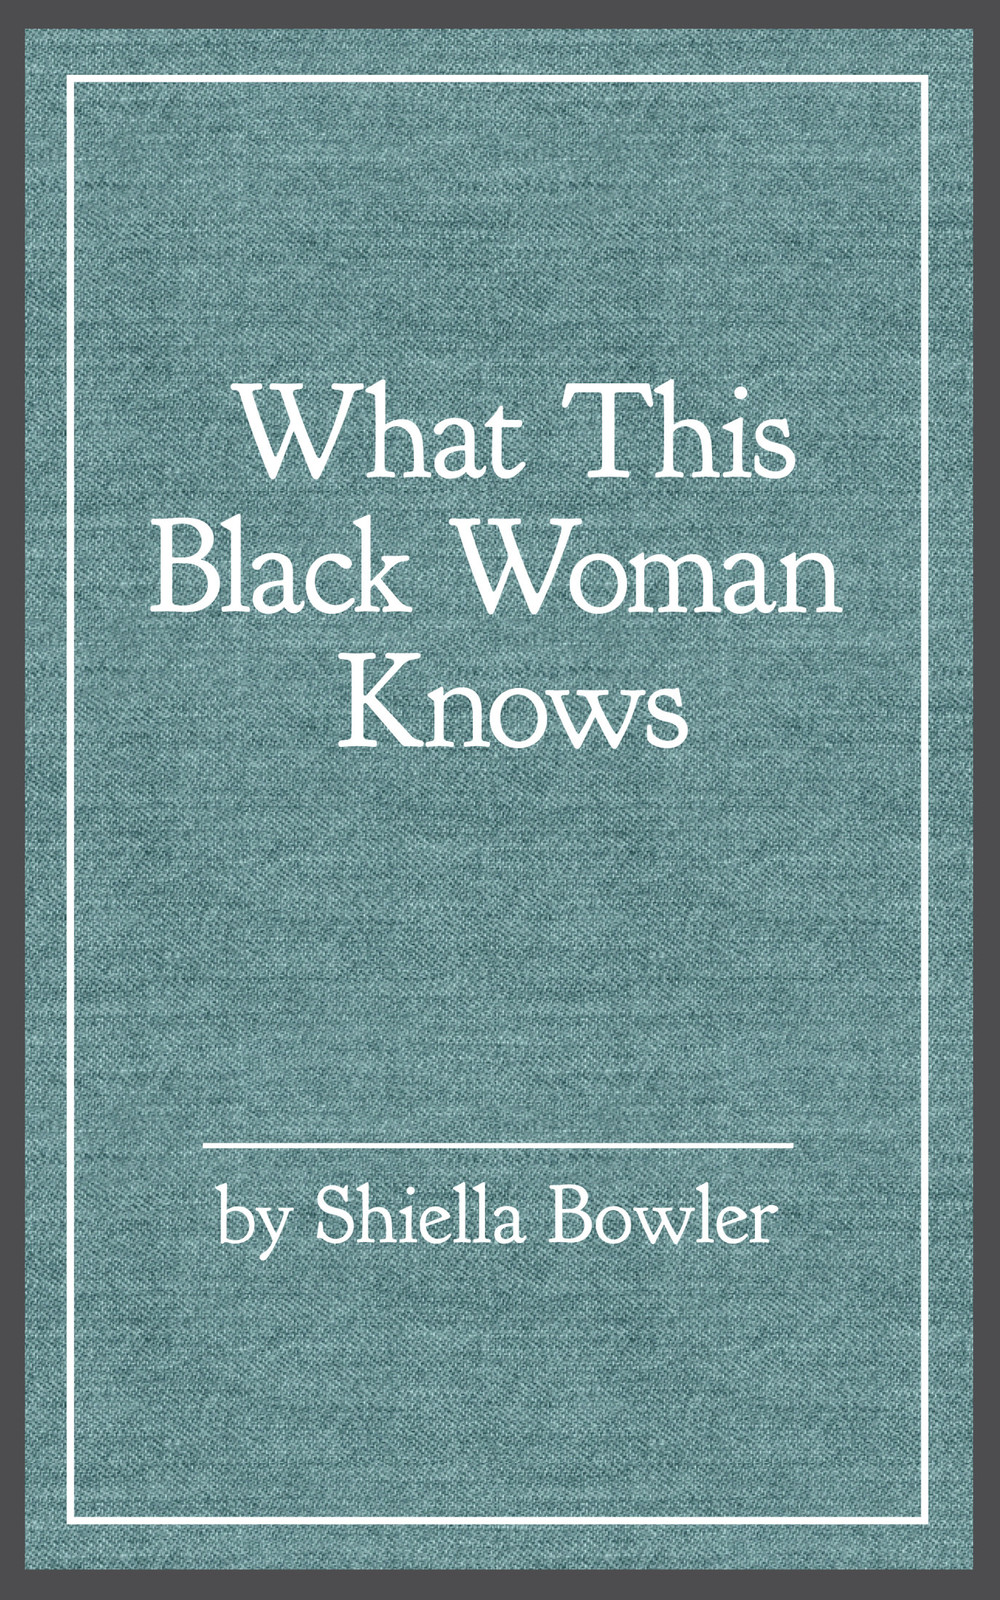 What This Black Woman Knows, by Shiella Bowler   978-0-9859044-9-4     Goodreads  -  Google Books    $1.29 download    Available from:  aois21 market  -   Smashwords  -  Amazon     KoboBook S -   Google Play  -  Barnes & Noble     iBookstore  -   Indigo (Canada)